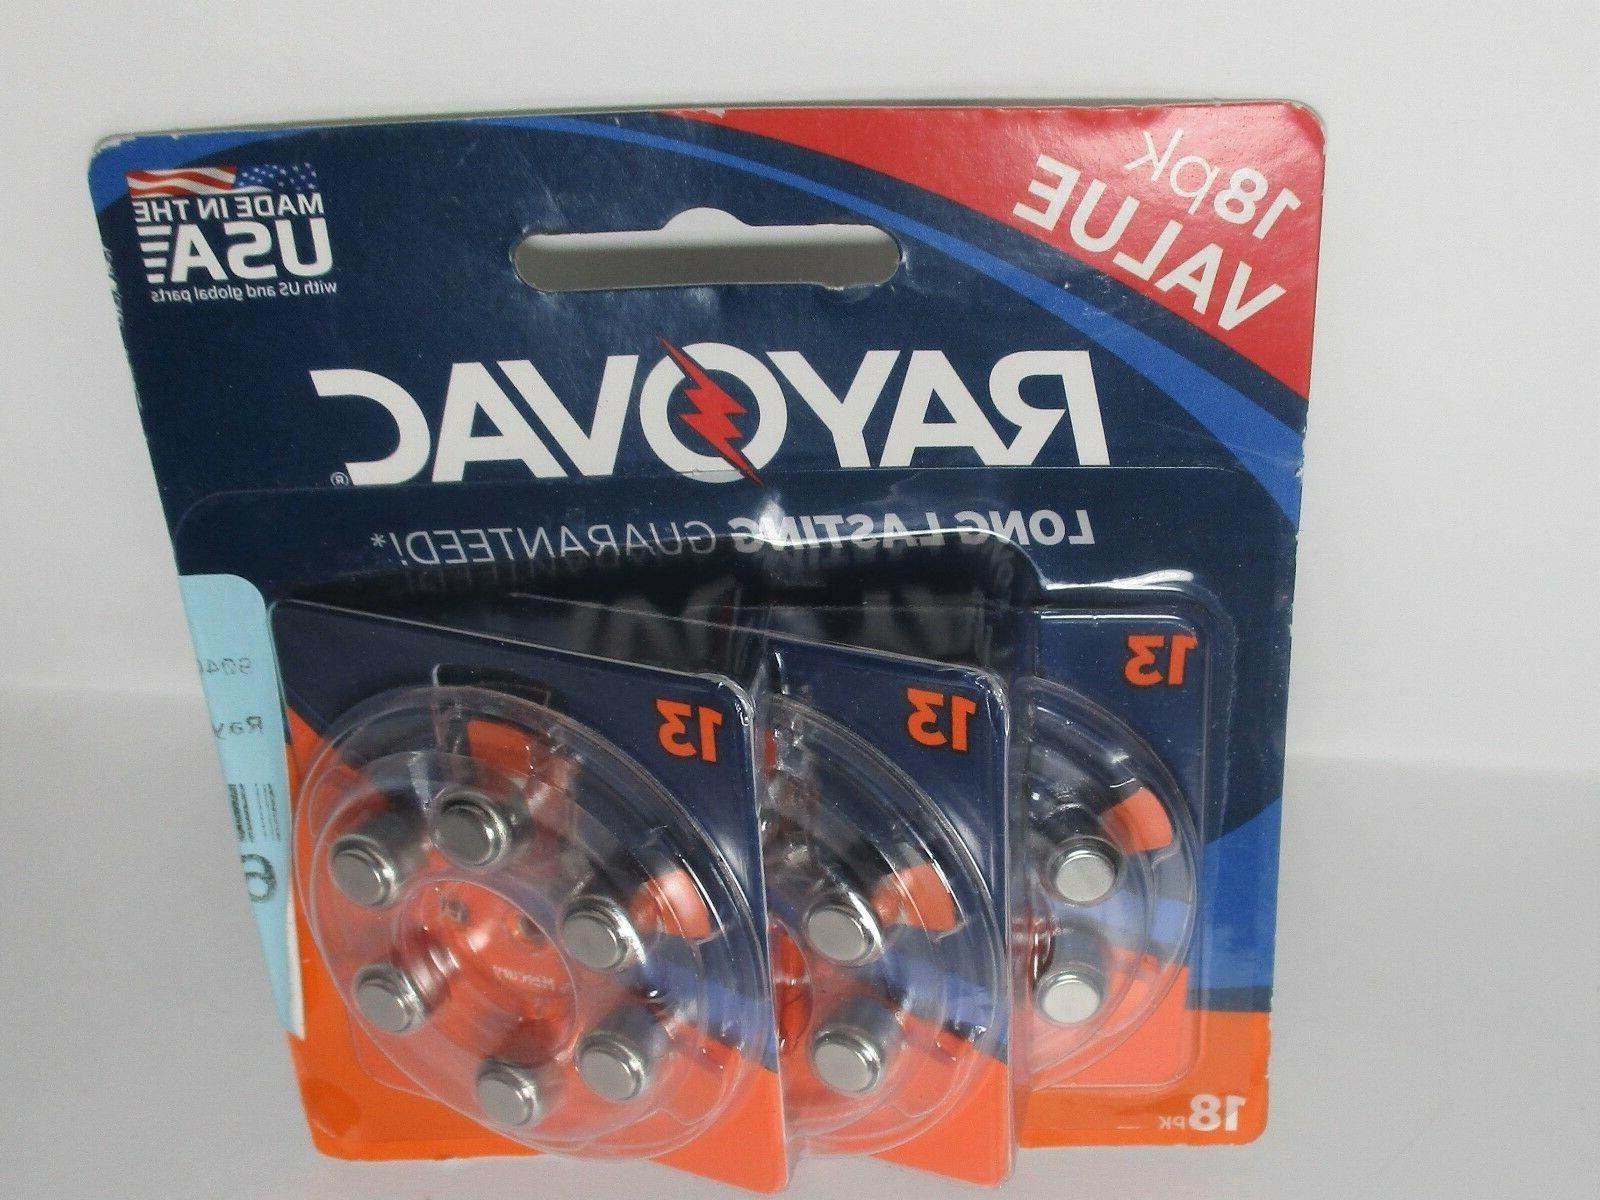 4 x hearing aid batteries size 13